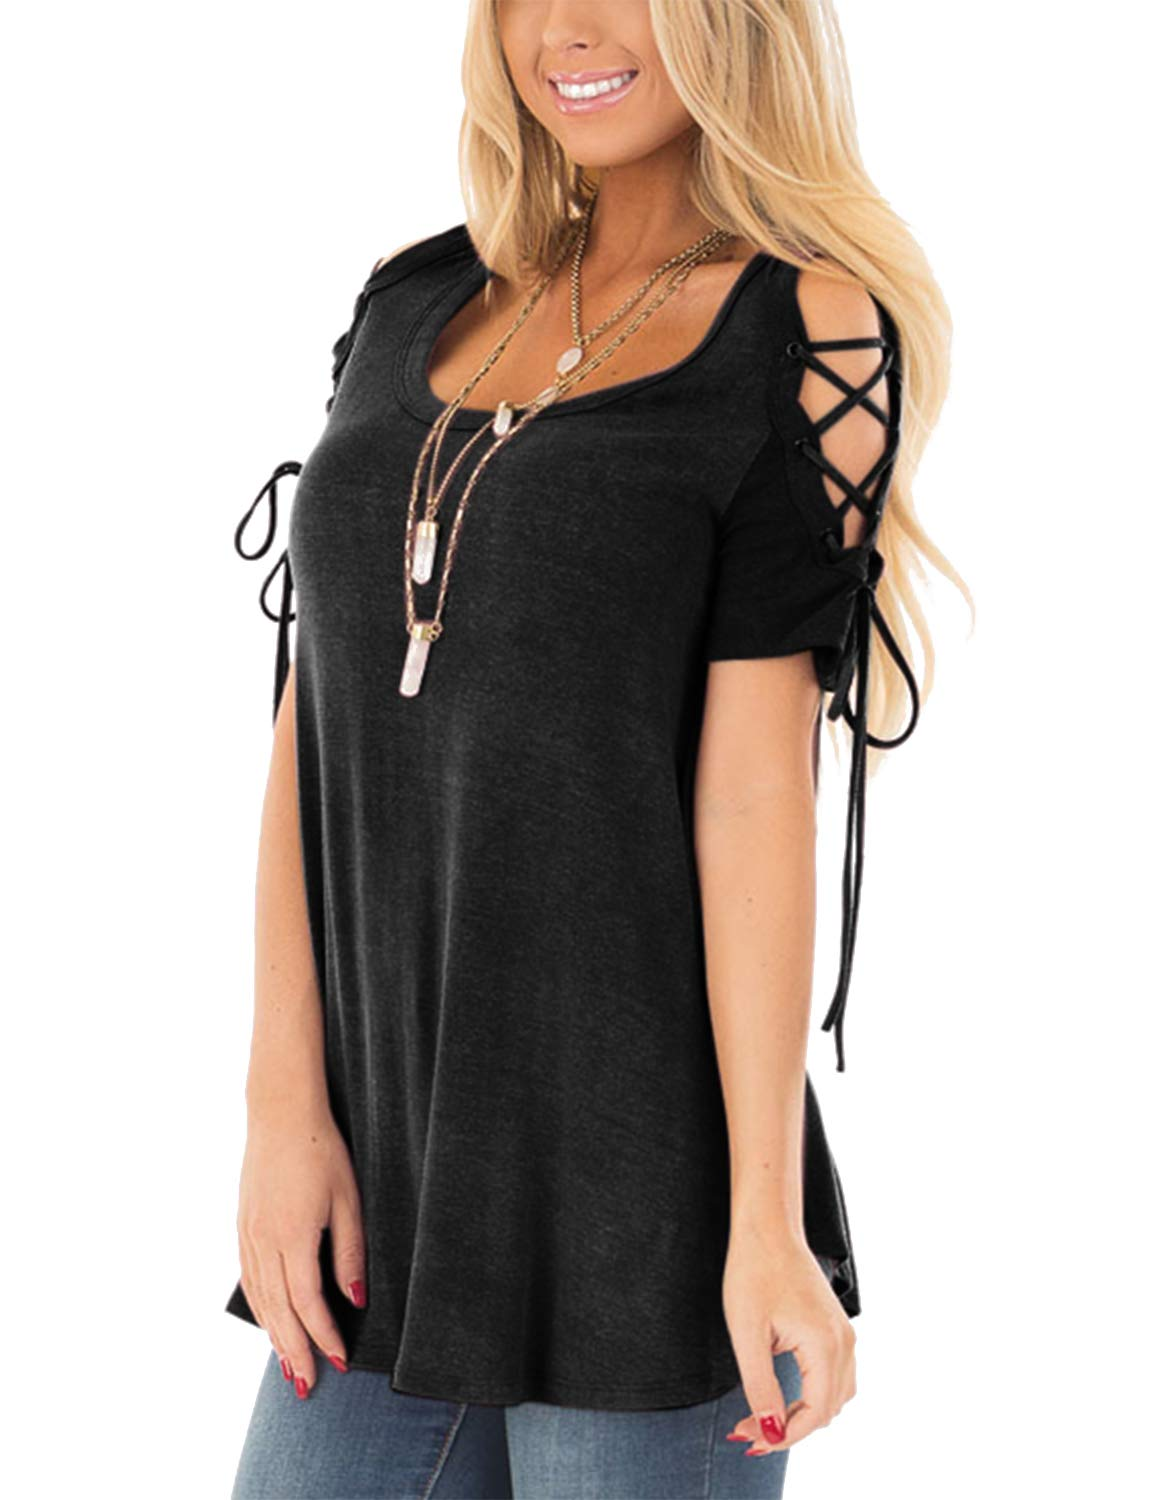 272a8b4aea6a3 80% discount on BMJL Women's V Neck Top Short Sleeve T Shirt Lace ...